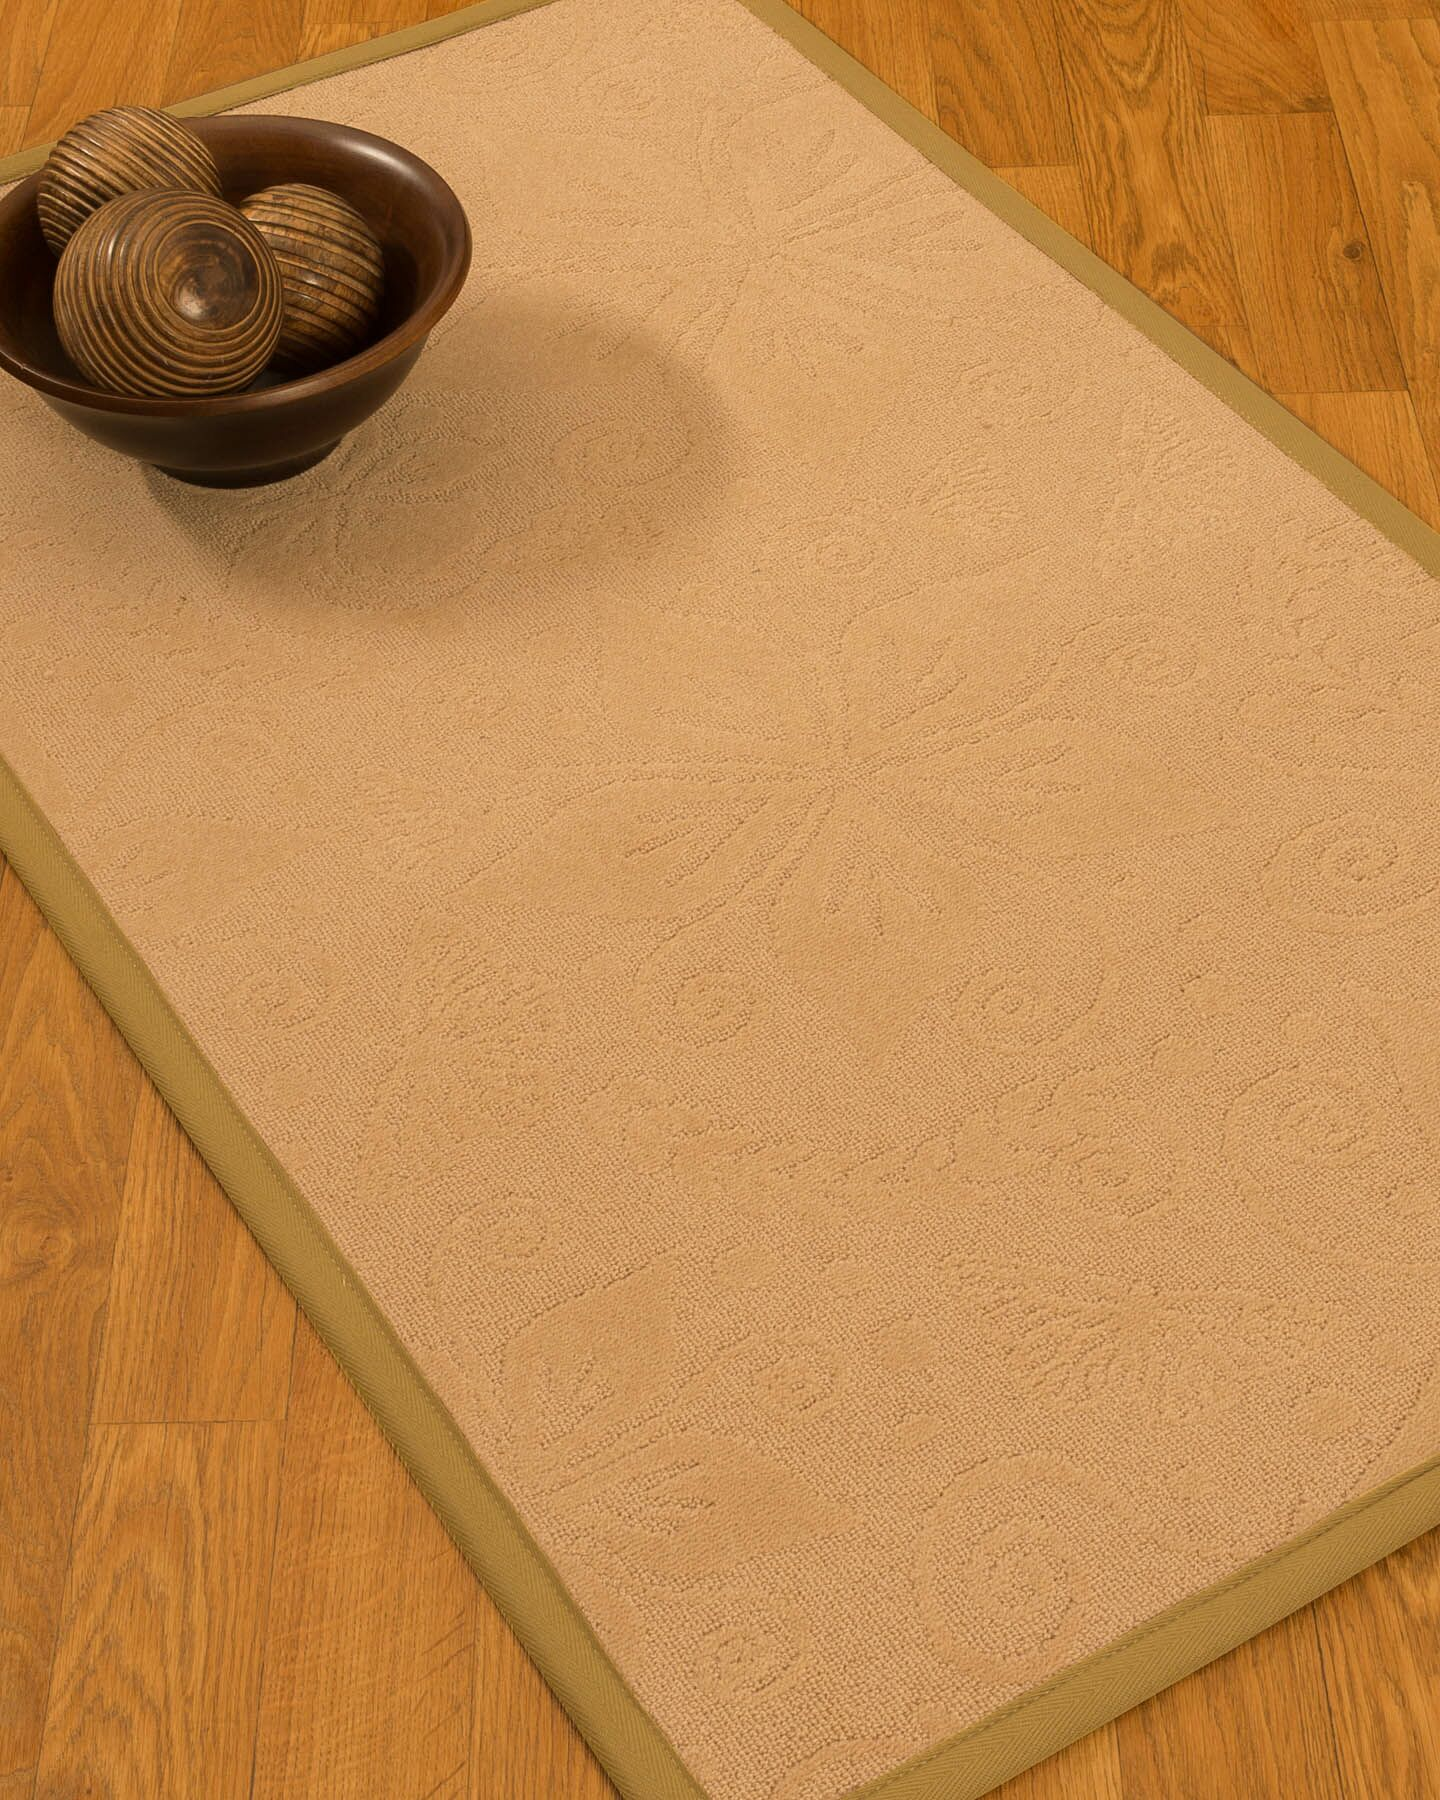 Vanmeter Border Hand-Woven Wool Beige/Sage Area Rug Rug Size: Rectangle 9' x 12', Rug Pad Included: Yes